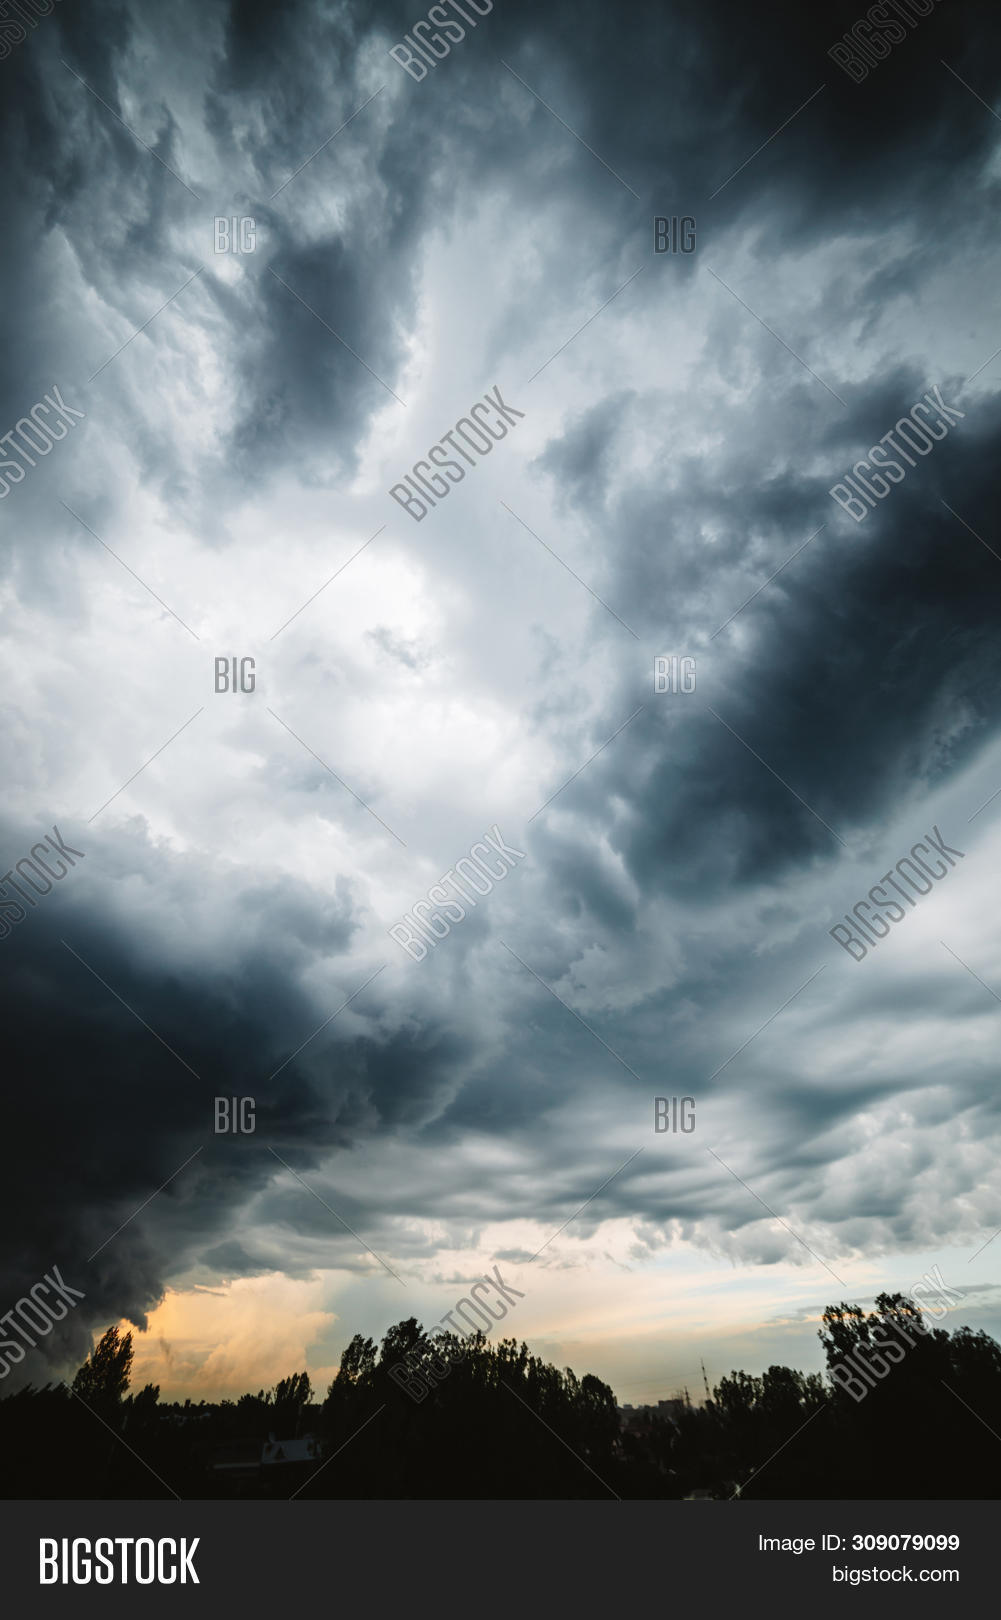 atmosphere,backdrop,background,bad,beautiful,cirrus,climate,cloudiness,clouds,cloudscape,cloudy,cumulonimbus,danger,darkness,dawn,disaster,dramatic,electric,environment,gray,heaven,hurricane,impressive,landscape,layered,majestic,meteorology,moody,nature,ominous,overcast,overcloud,pattern,scenery,scenic,sky,snorter,storm,stormy,stratus,sunrise,sunset,texture,thunder,thunderclouds,thunderstorm,weather,wind,windstorm